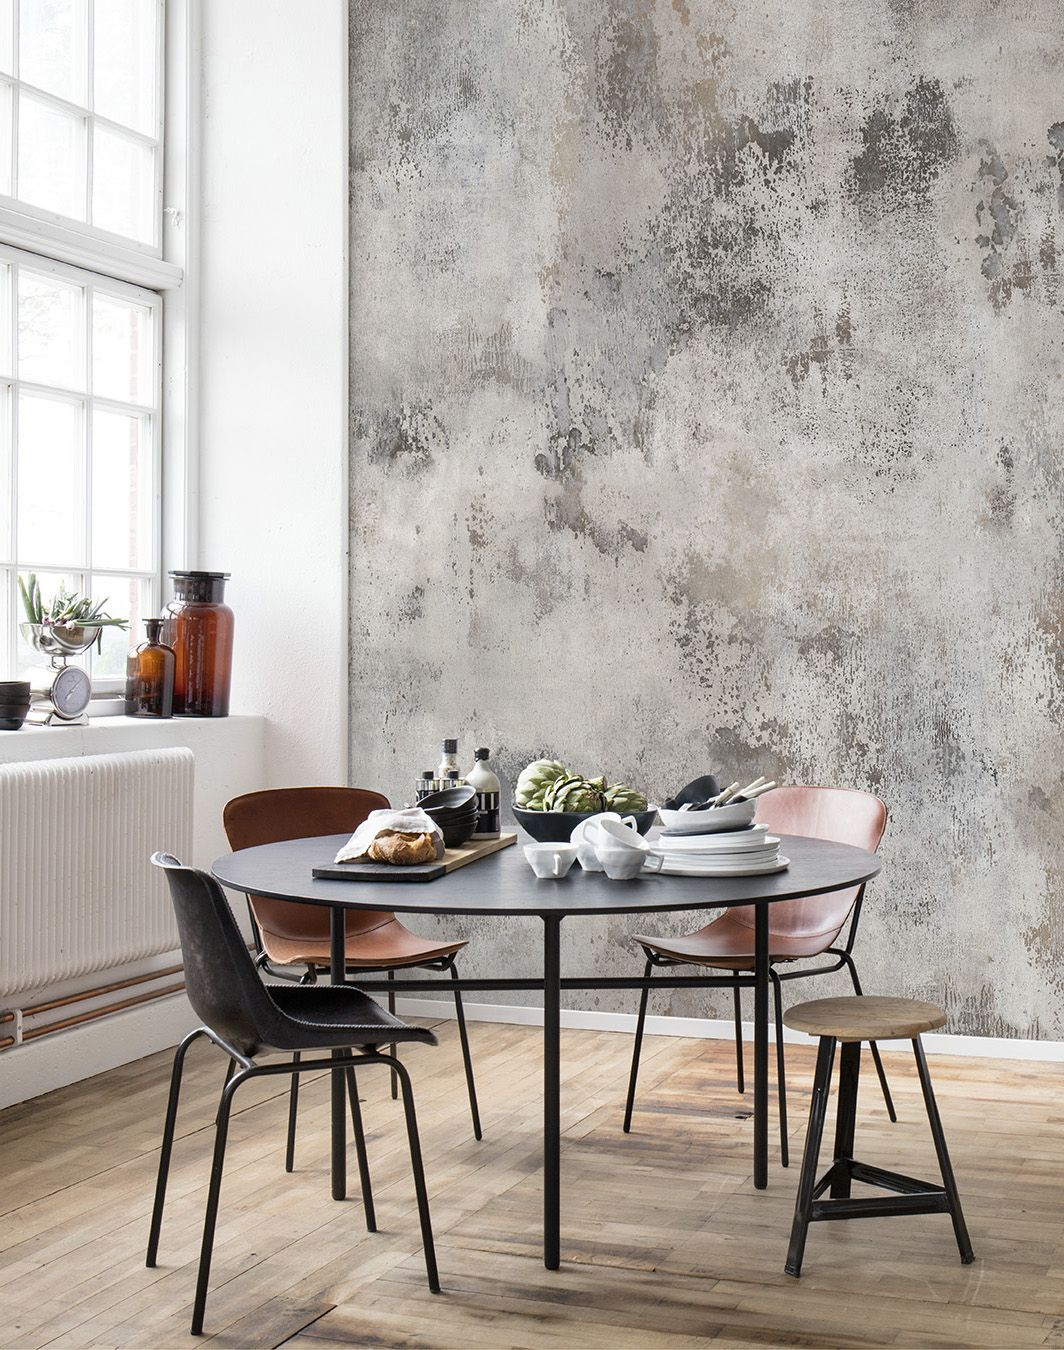 Patina | Decor in 2019 | Wandgestaltung tapete, Tapeten ...